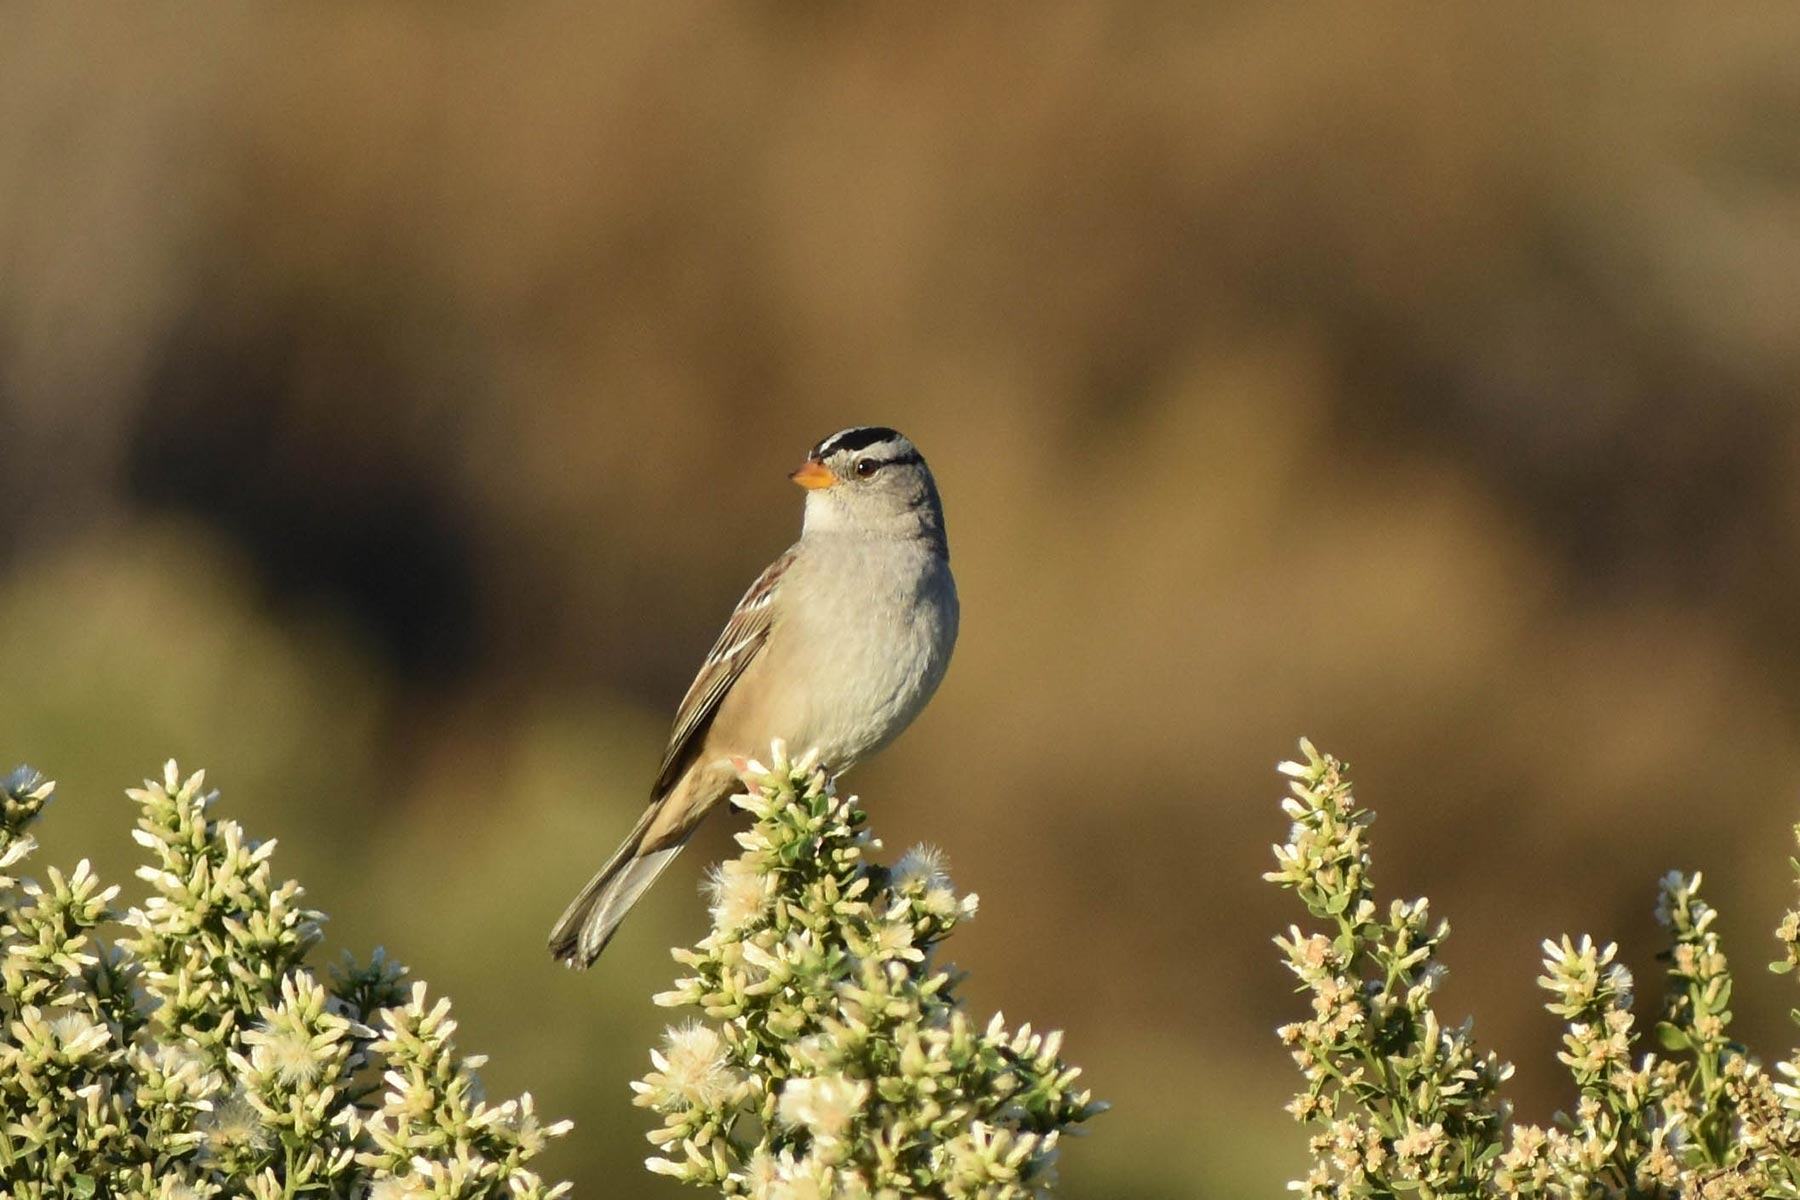 A white-crowned sparrow rests atop coyote bush (Baccharis pilularis). Credit: Tony Tubbs.